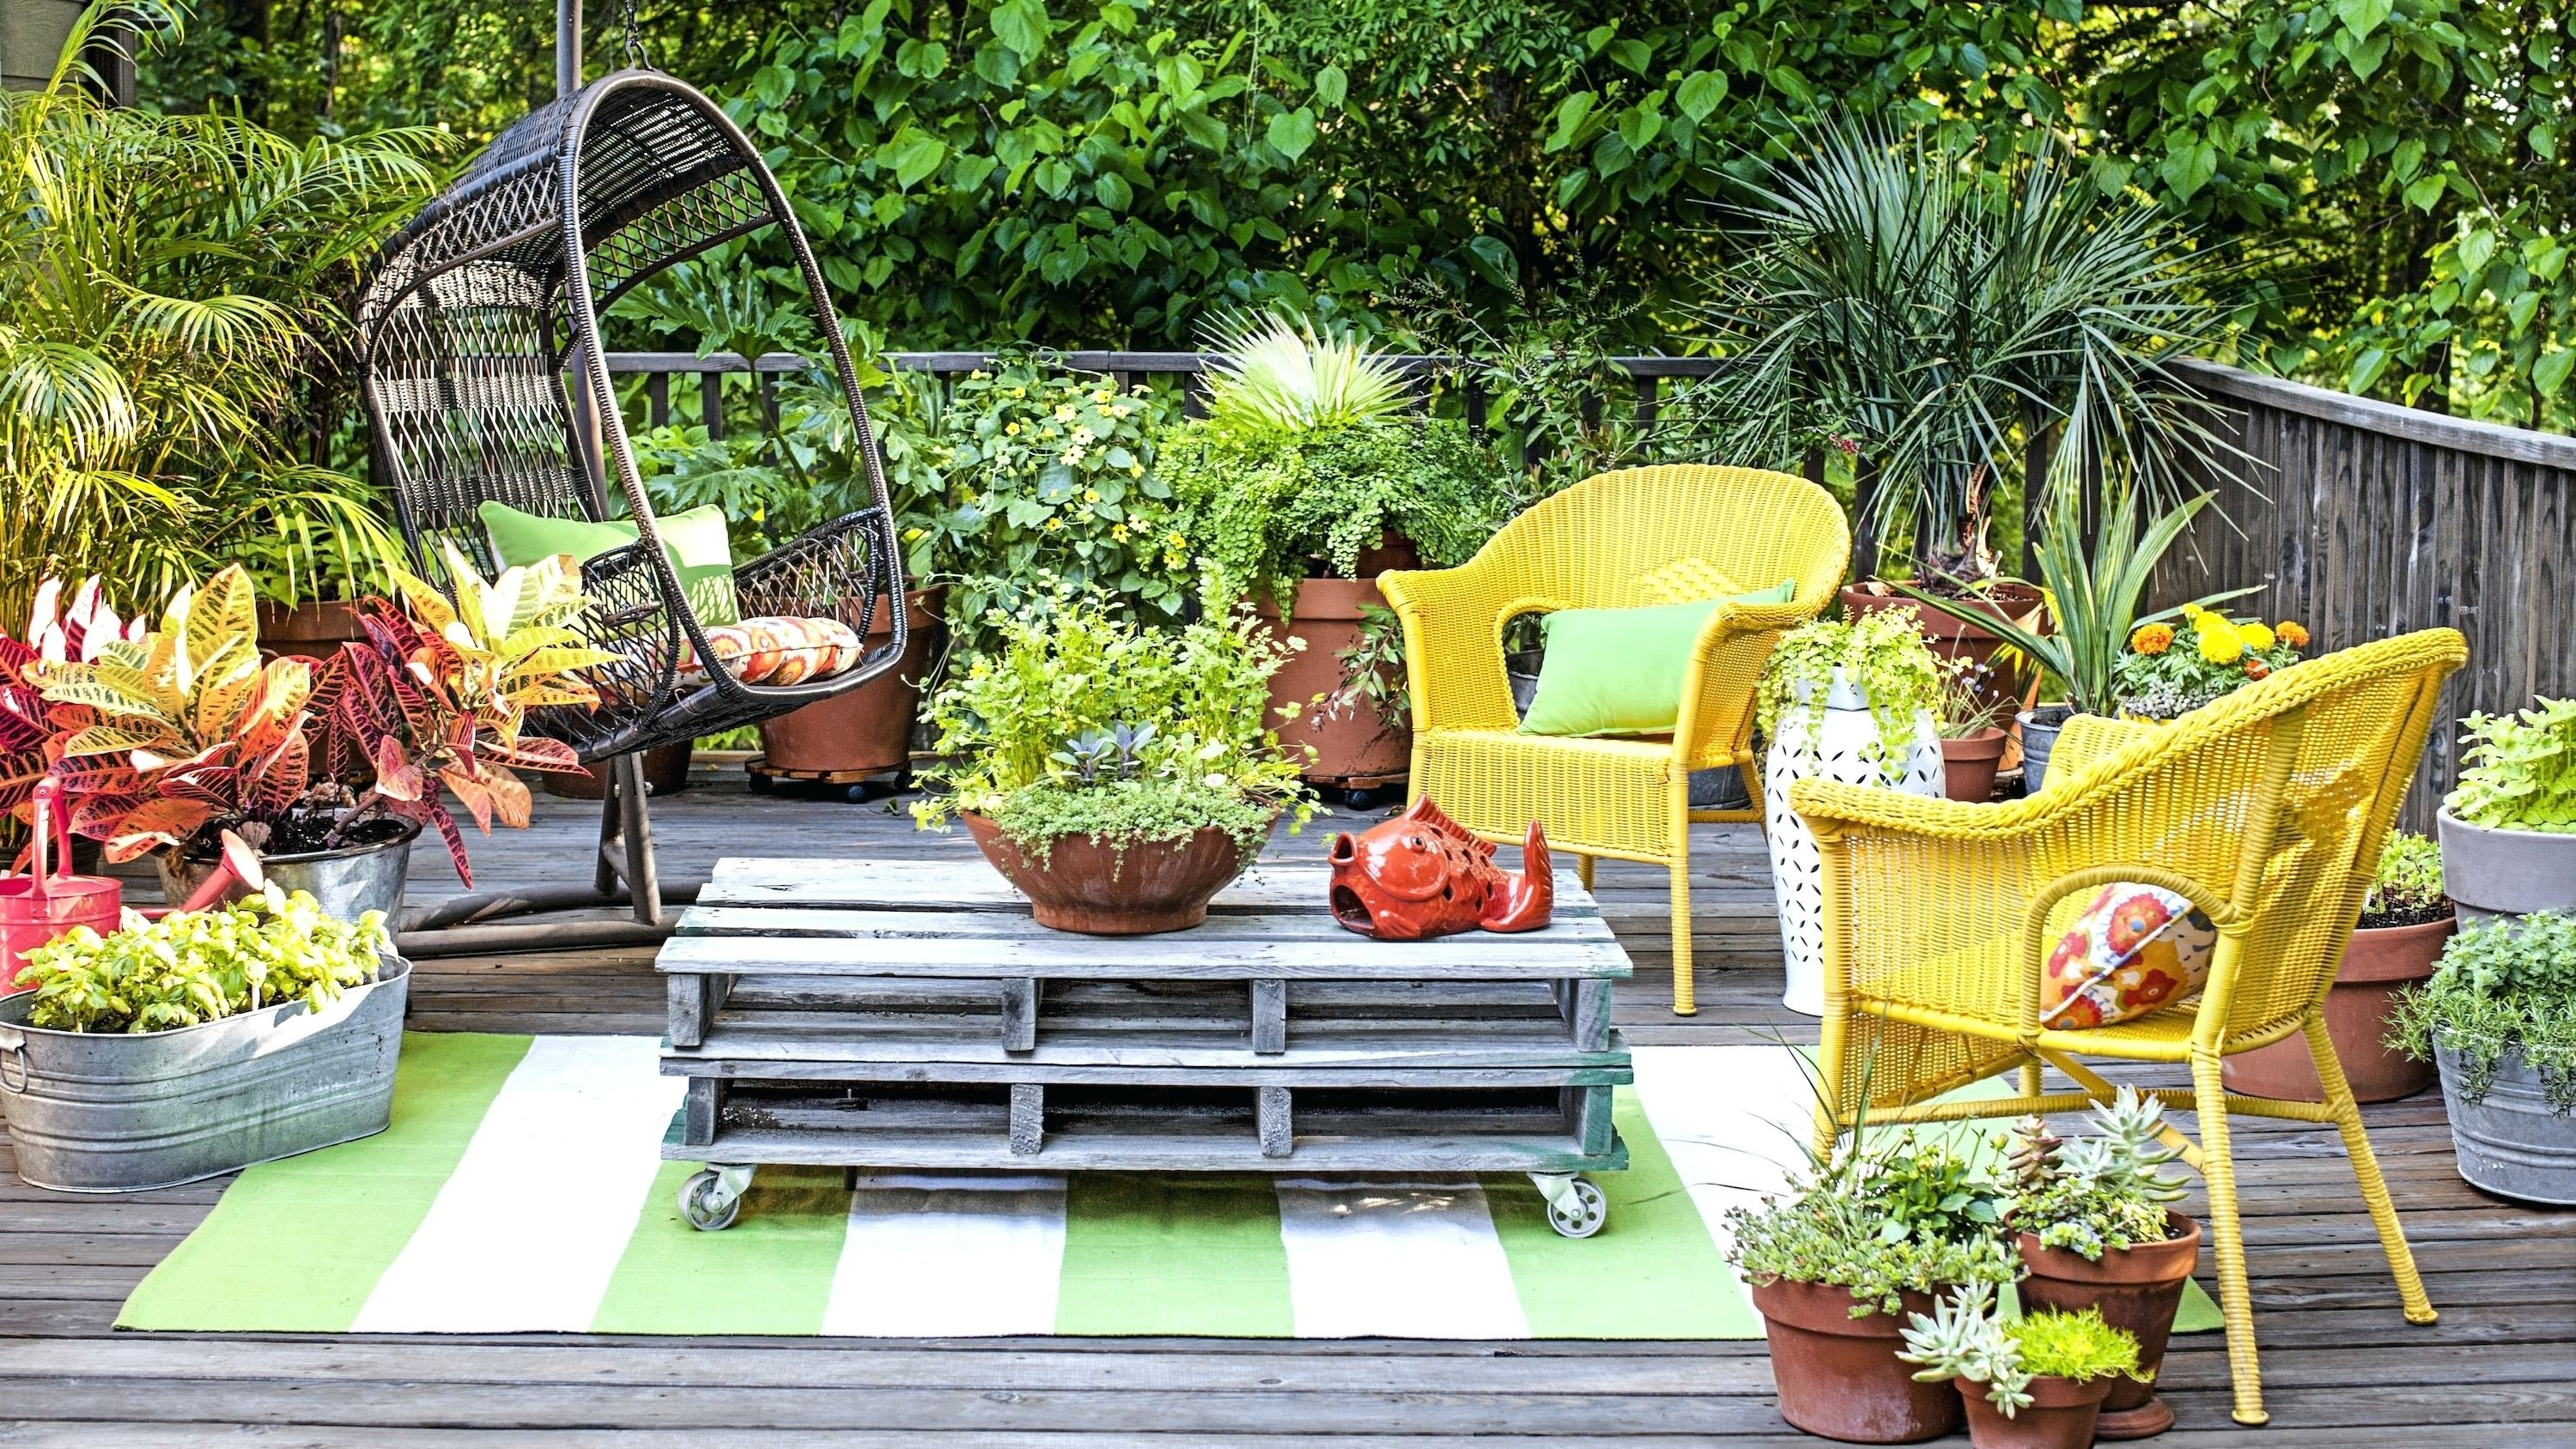 10 Lovely Small Patio Ideas On A Budget small patio design ideas on a budget lovable patio ideas small 2020